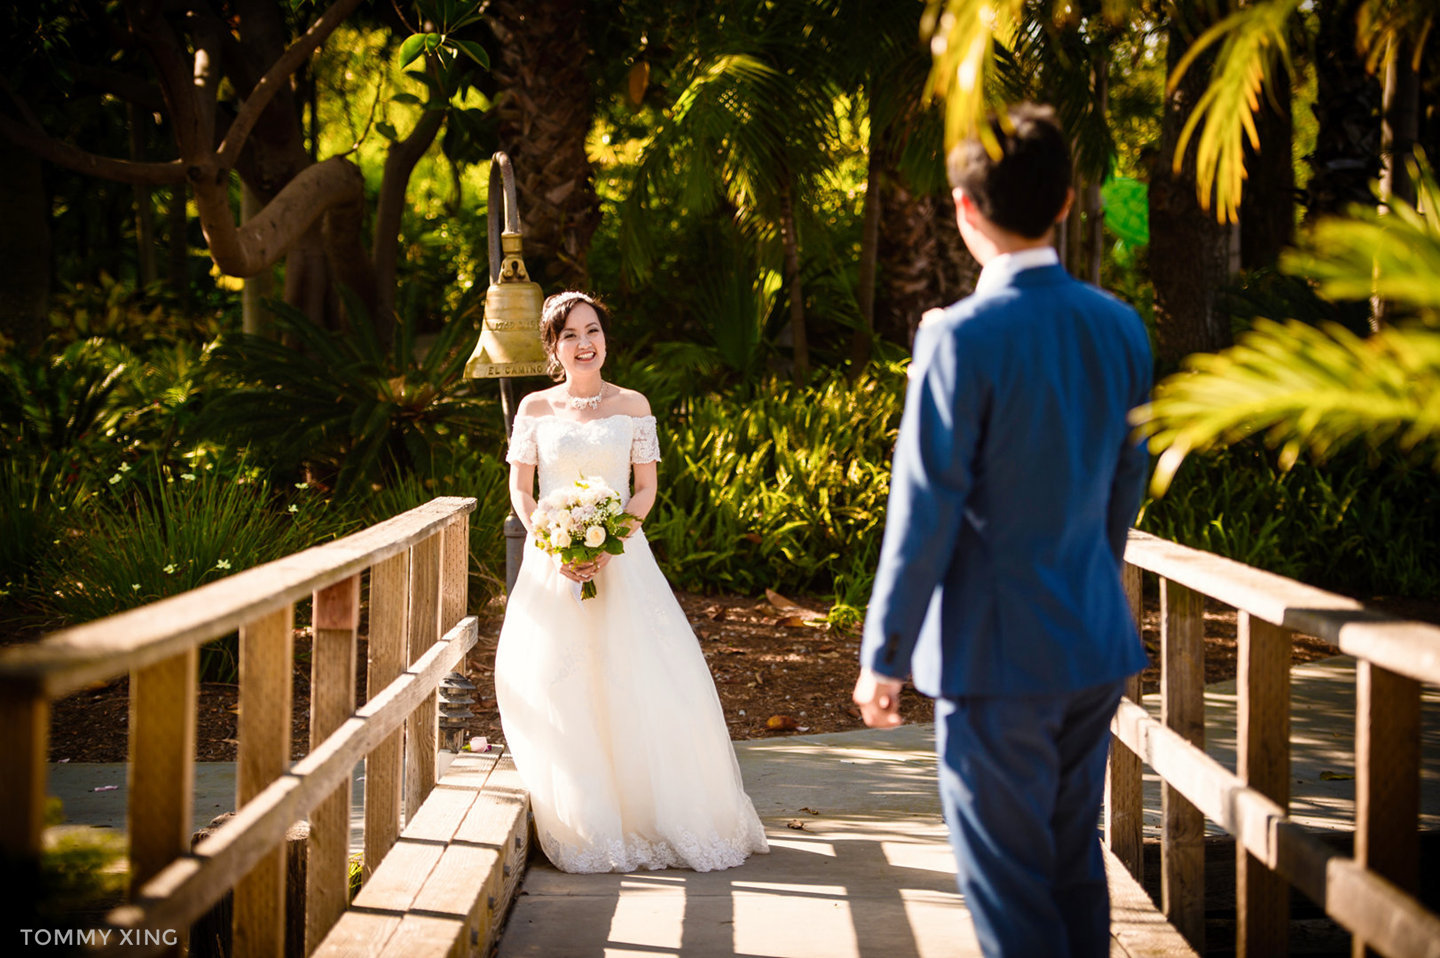 Paradise Point Resort Wedding Xiaolu & Bin San Diego 圣地亚哥婚礼摄影跟拍 Tommy Xing Photography 洛杉矶婚礼婚纱照摄影师 062.jpg